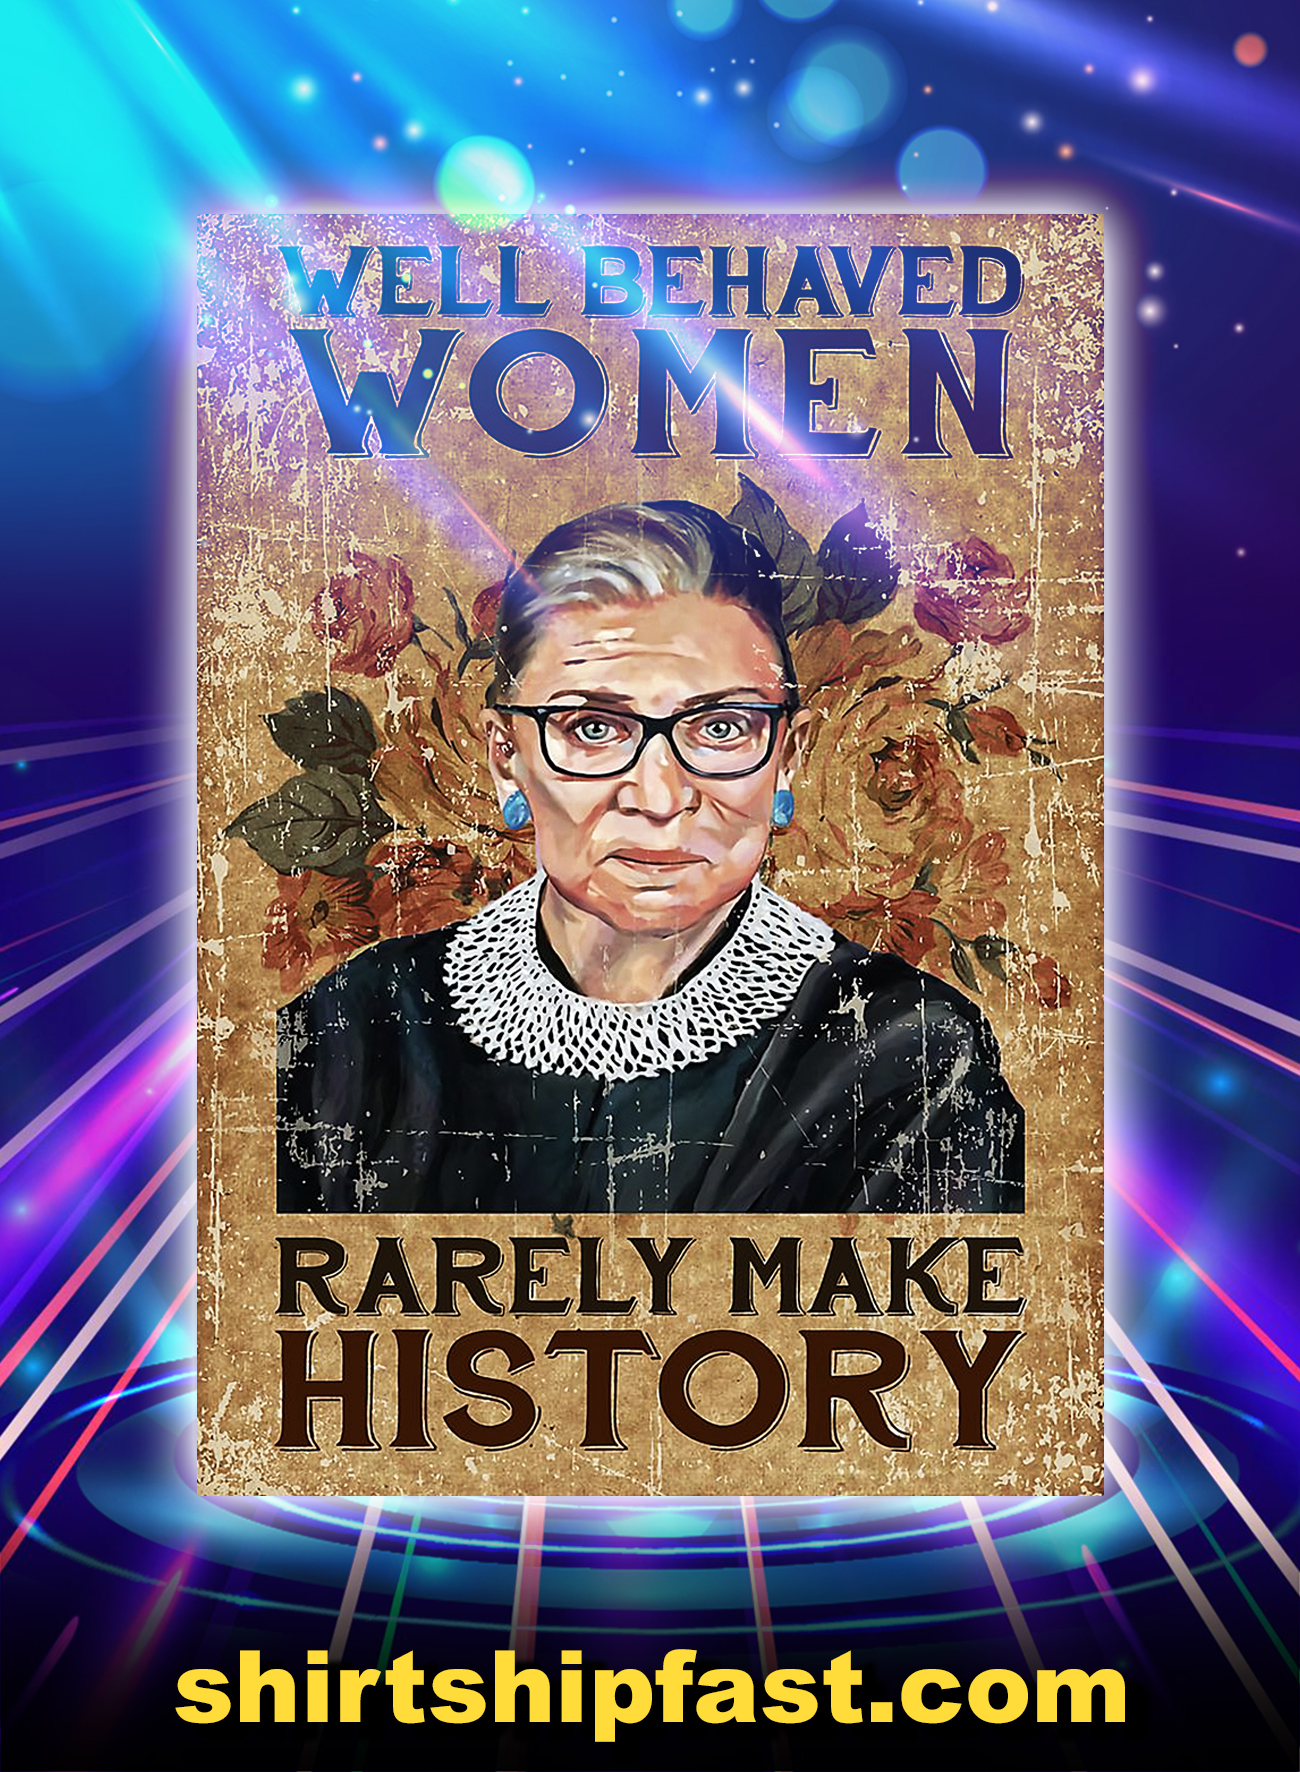 Rbg well behaved woman rearely make history poster - A4